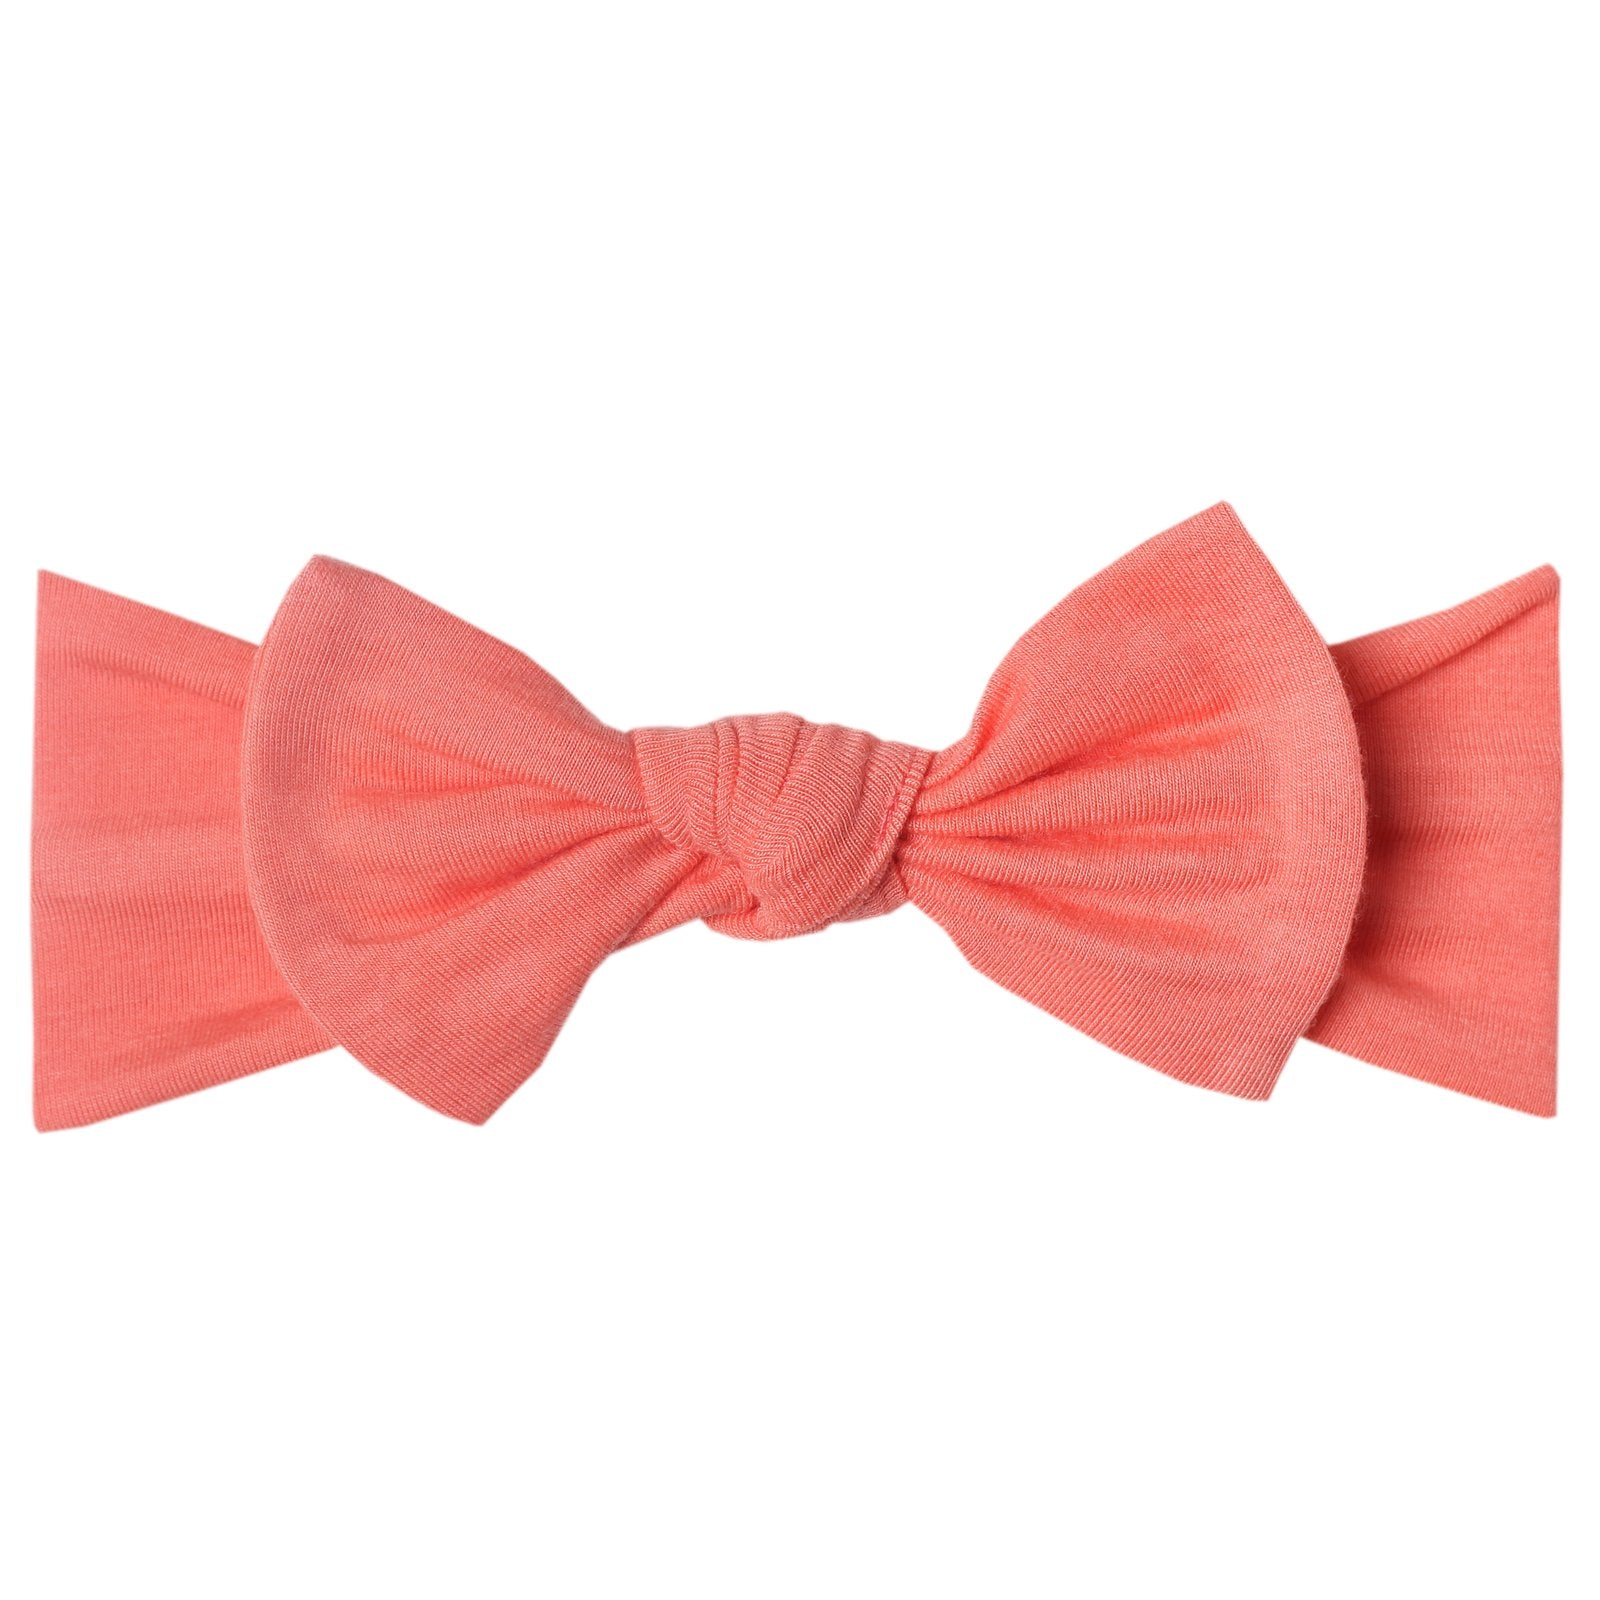 Stella Knit Headband Bow